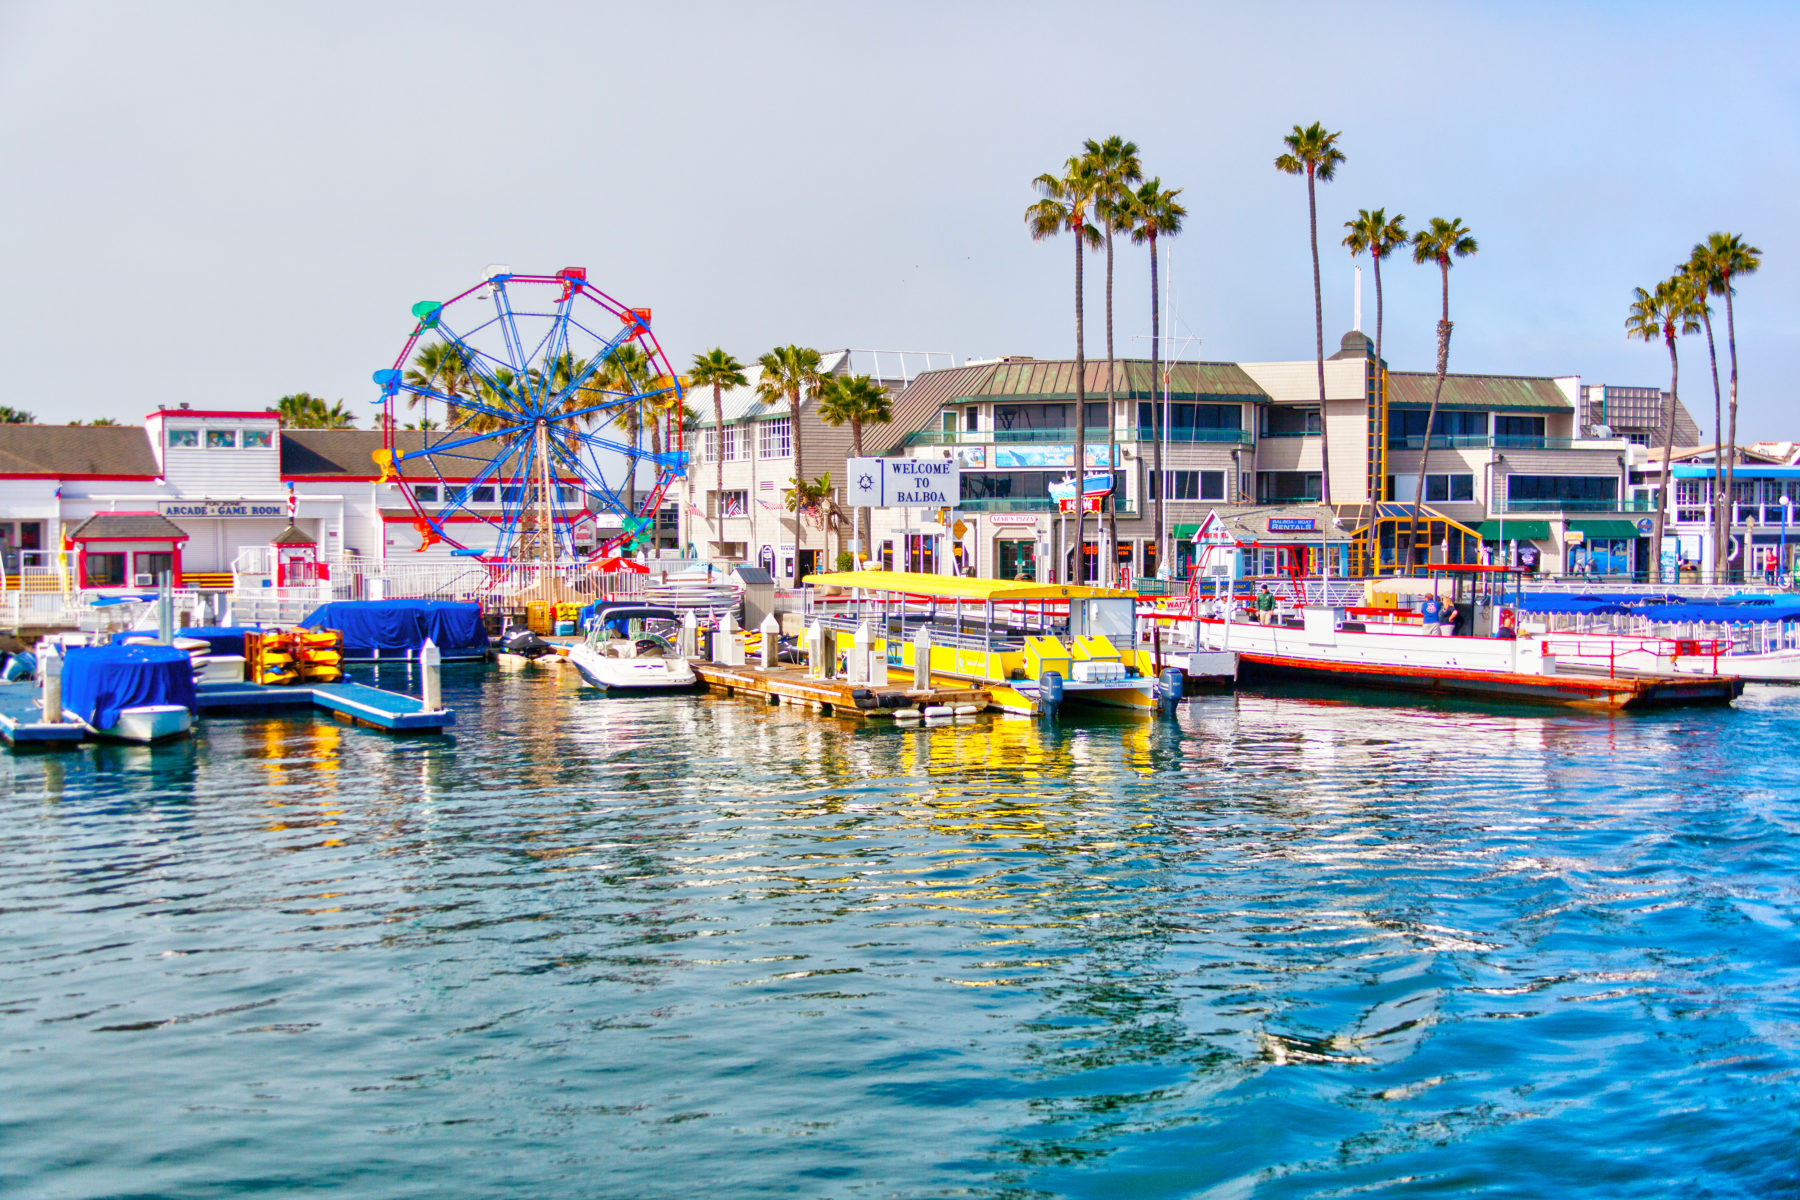 Insta Tour of Newport Beach, California